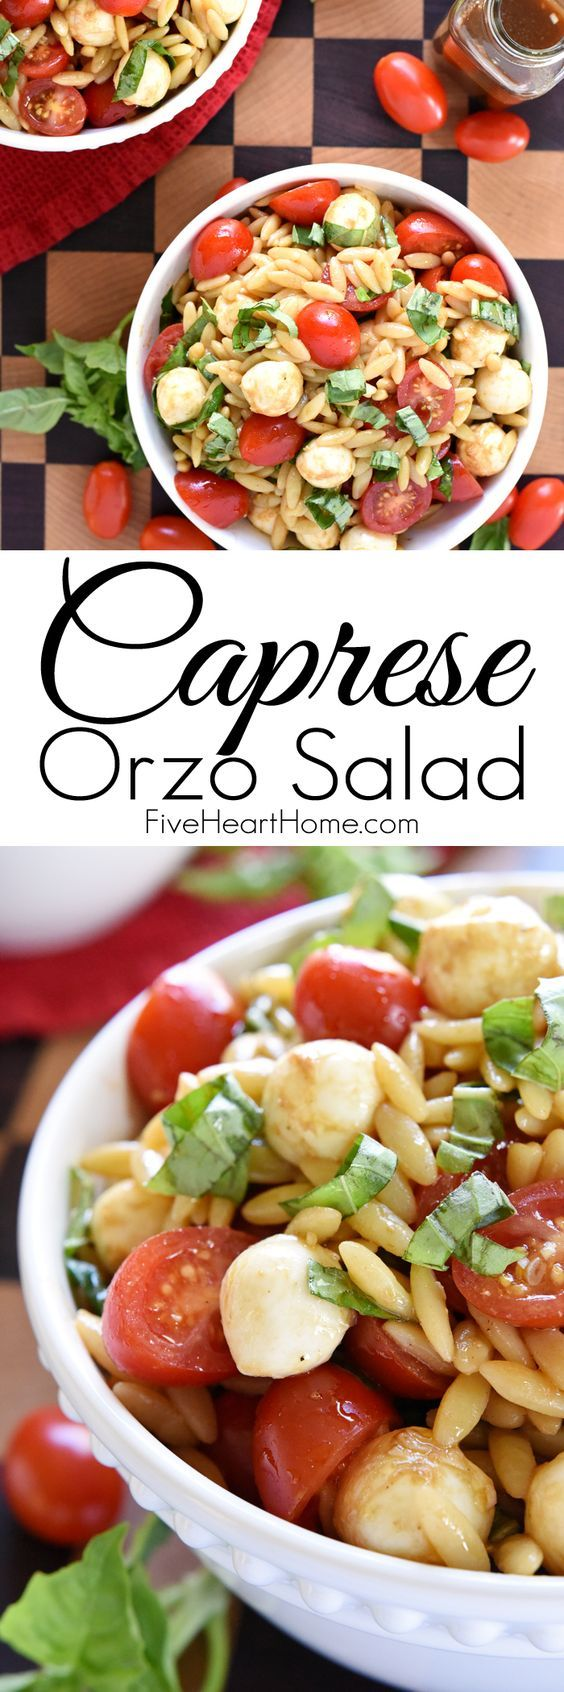 Caprese Orzo Salad ~ a vibrant summer pasta salad featuring juicy tomatoes…